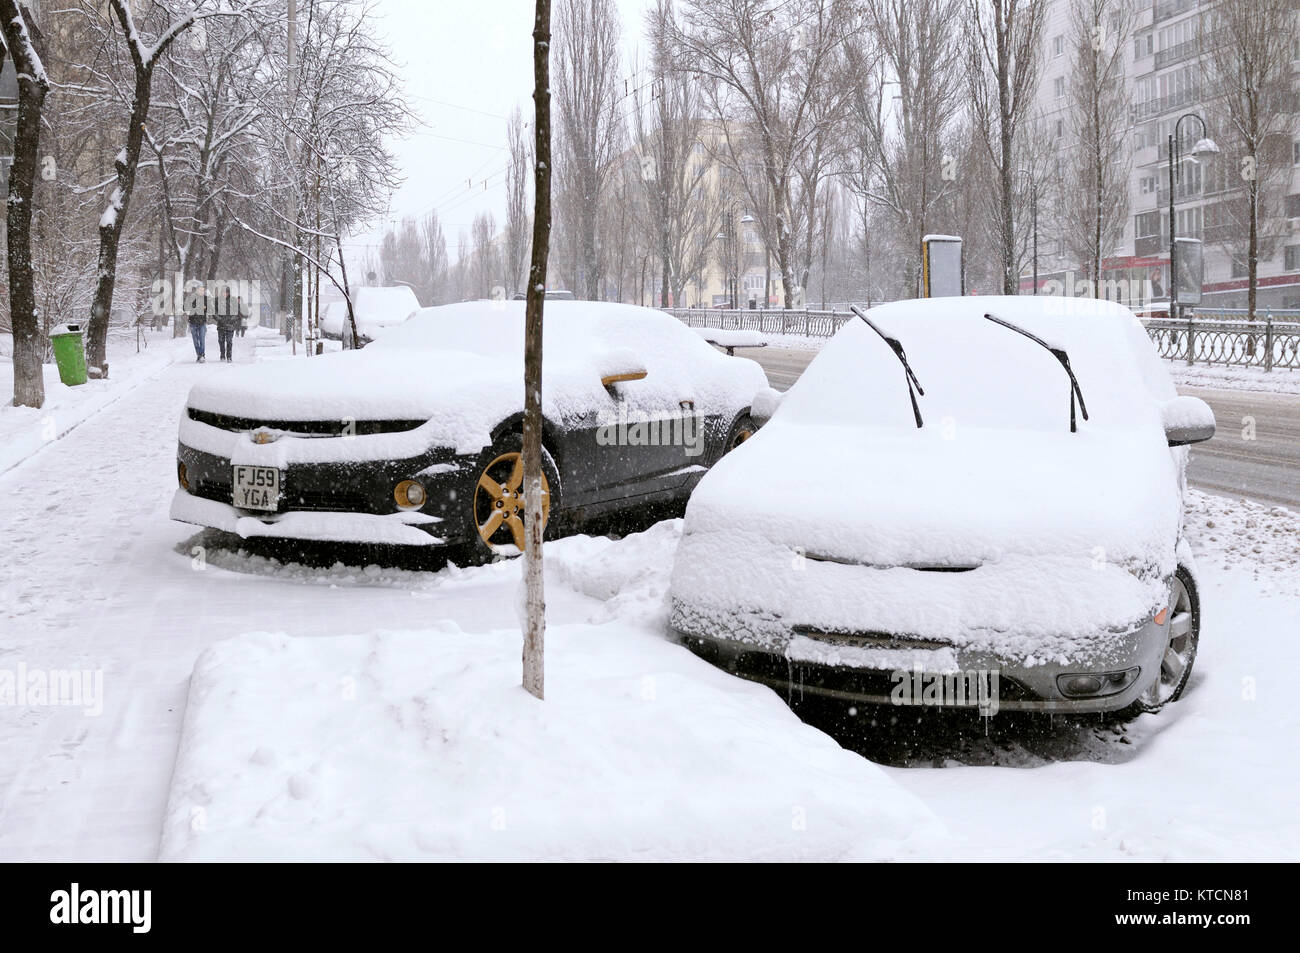 City after blizzard. Cars parked on a street of Kyiv covered with snow. January 12, 2016. Kyiv, Ukraine. - Stock Image